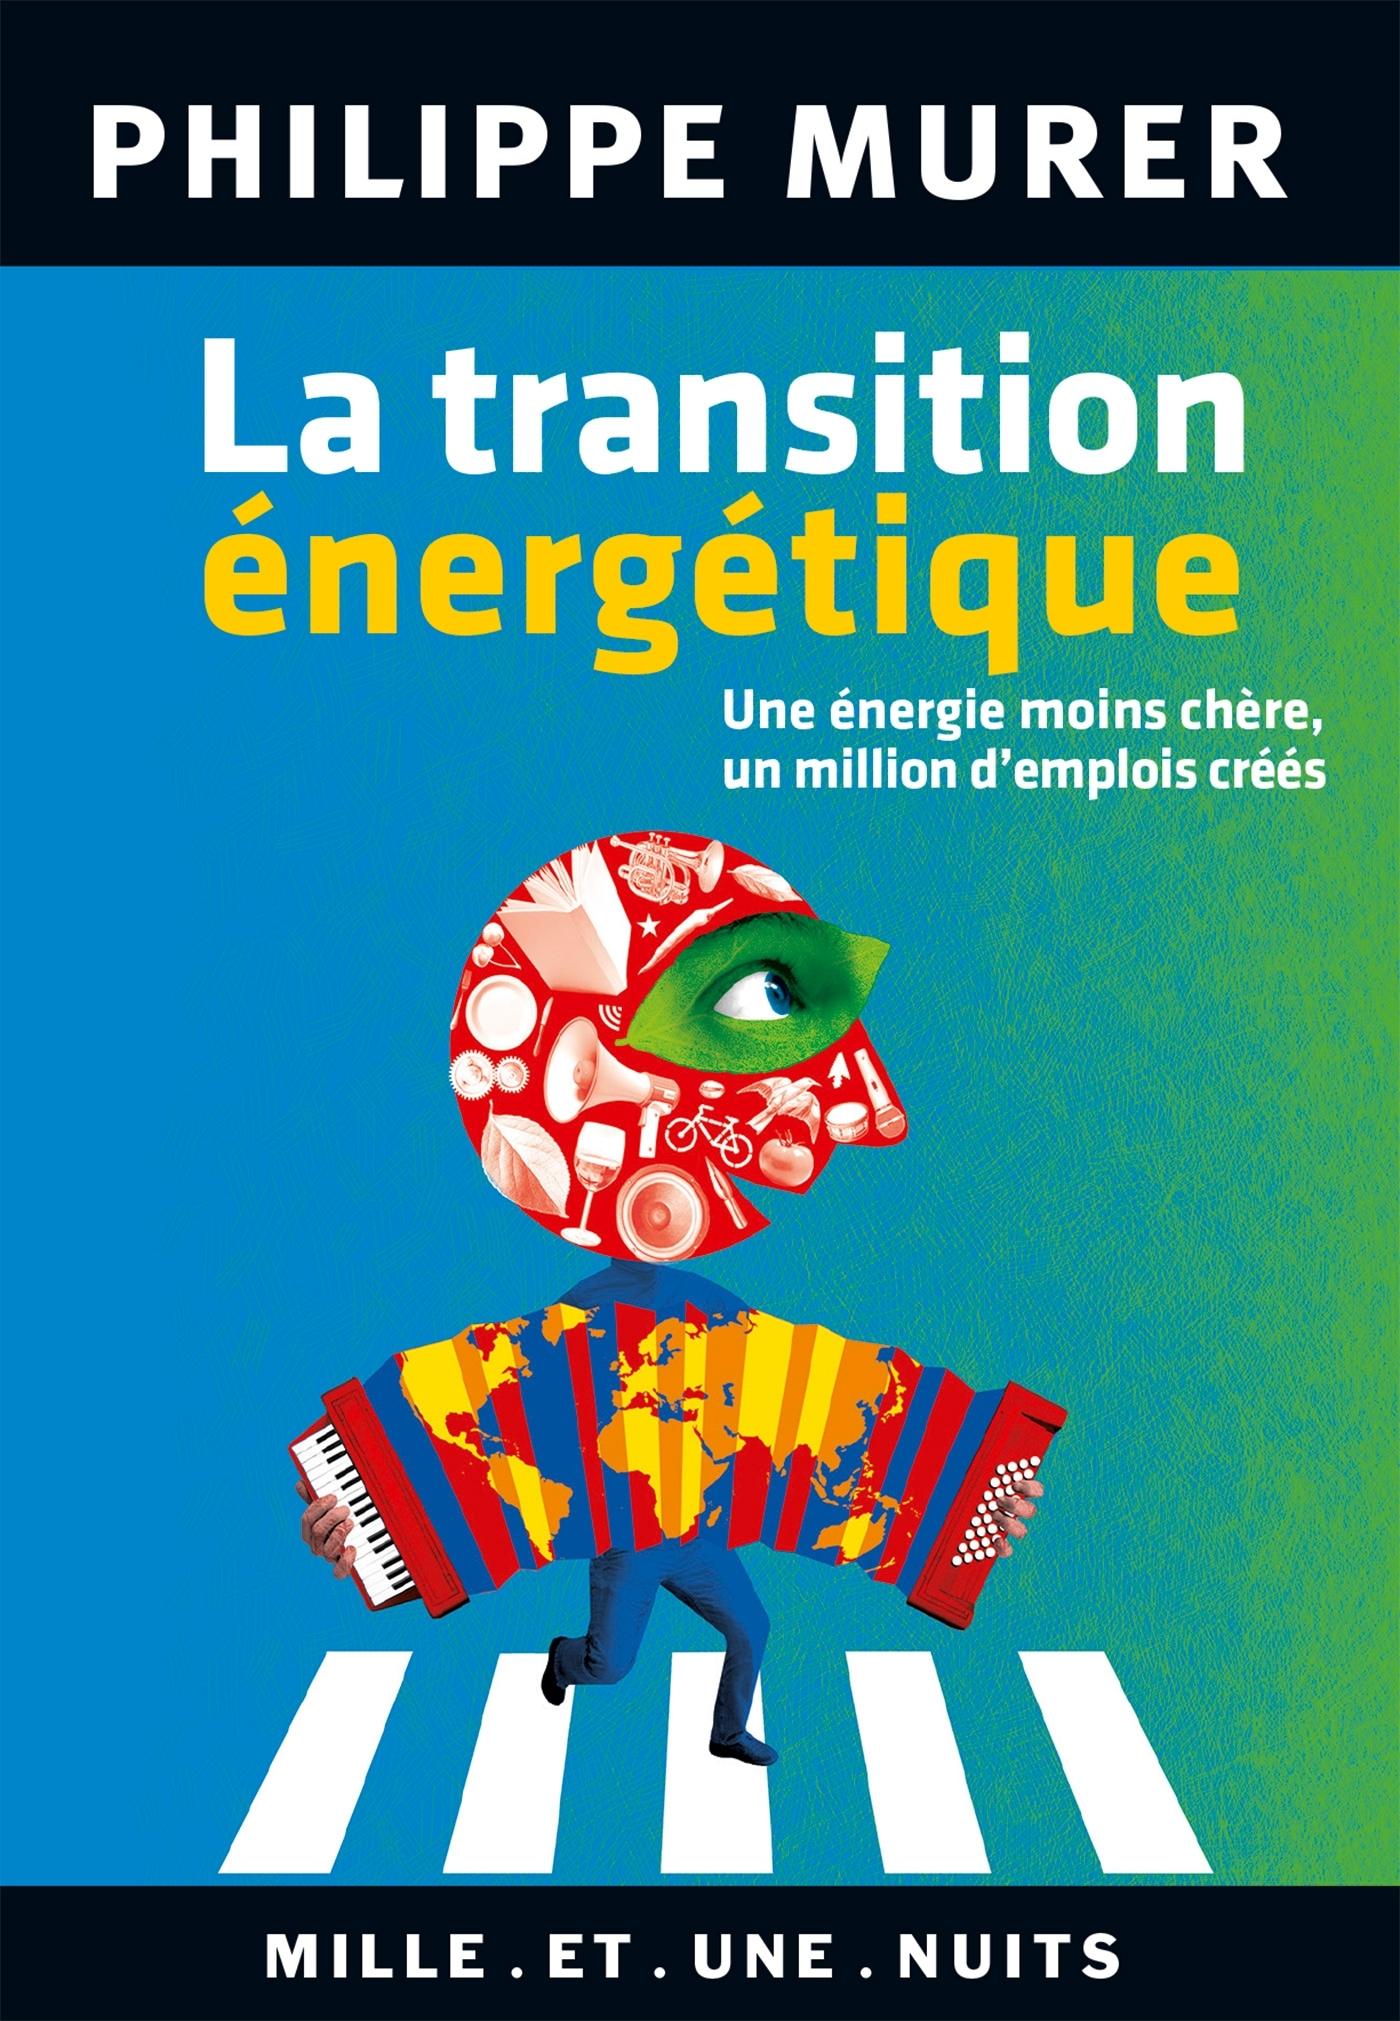 LA TRANSITION ENERGETIQUE - UNE ENERGIE MOINS CHERE, UN MILLION D'EMPLOIS CREES